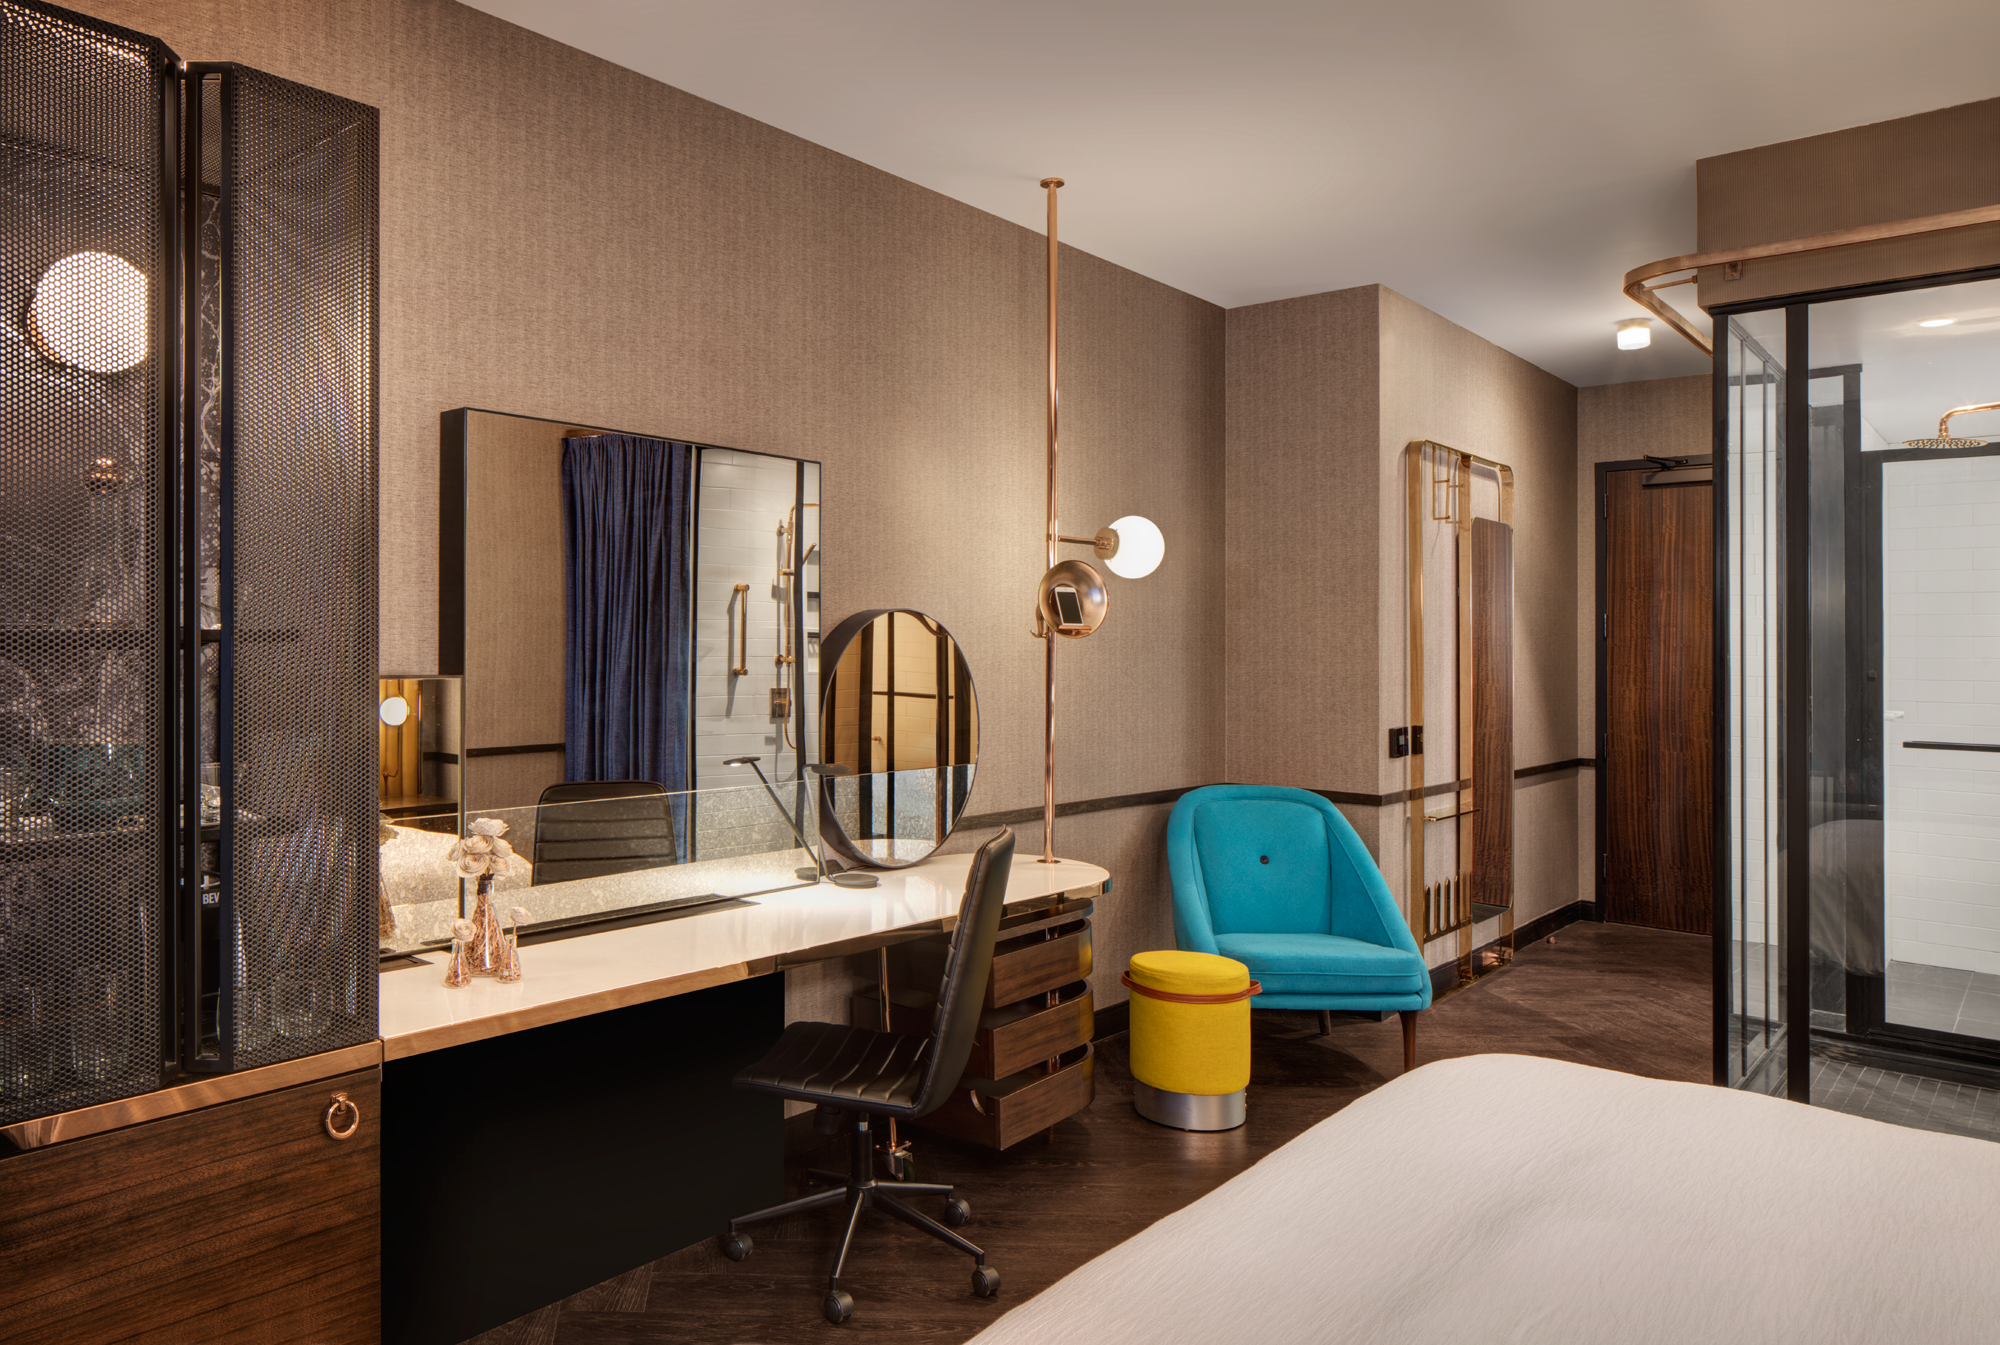 Hotel emc2 is a soulful boutique hotel that embodies the spirit of hotel emc2 is a soulful boutique hotel that embodies the spirit of technology art and science the 195 guest rooms designed by rockwell group are publicscrutiny Images